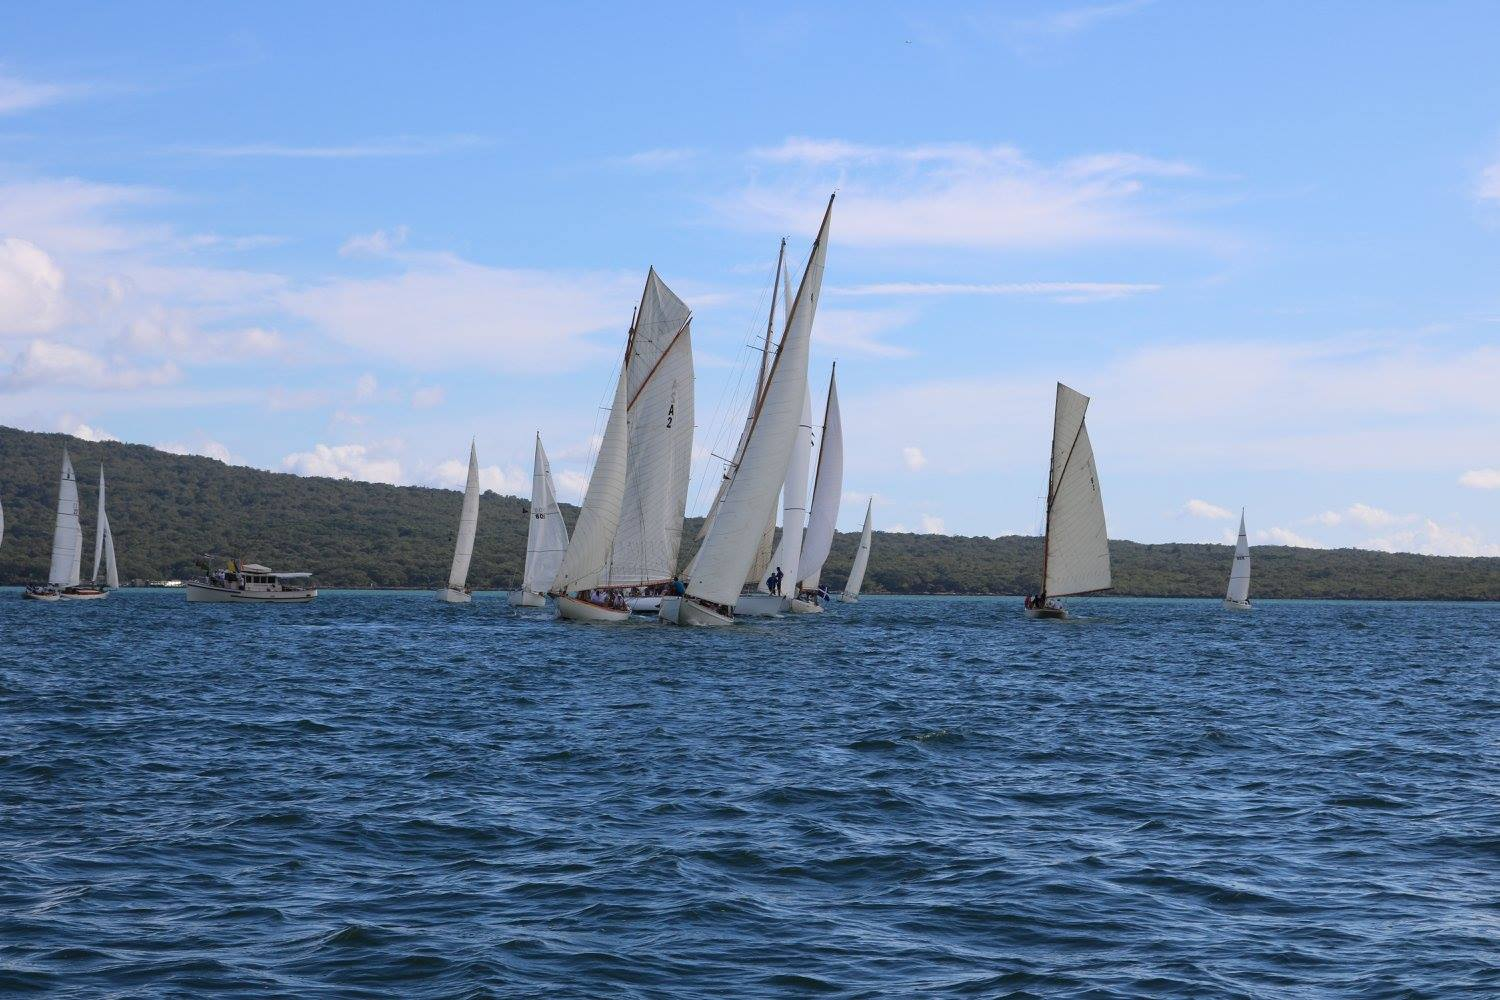 Classic yacht racing in the Waitemata Harbour